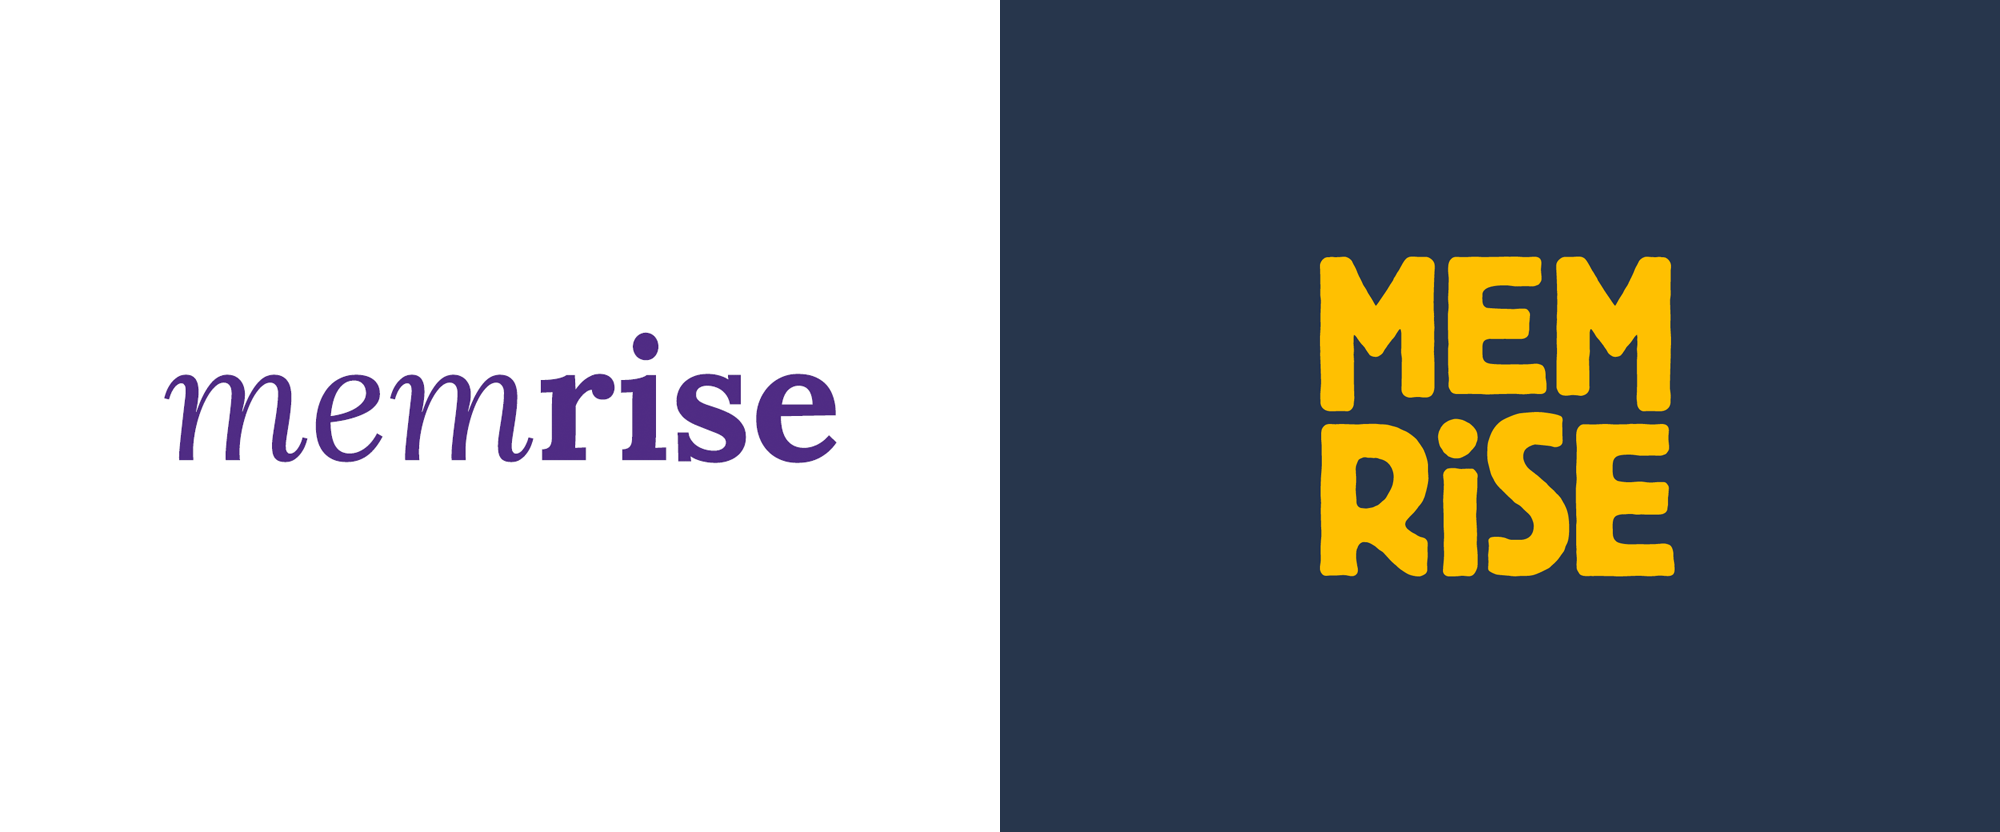 New Logo for Memrise by Moving Brands and In-house